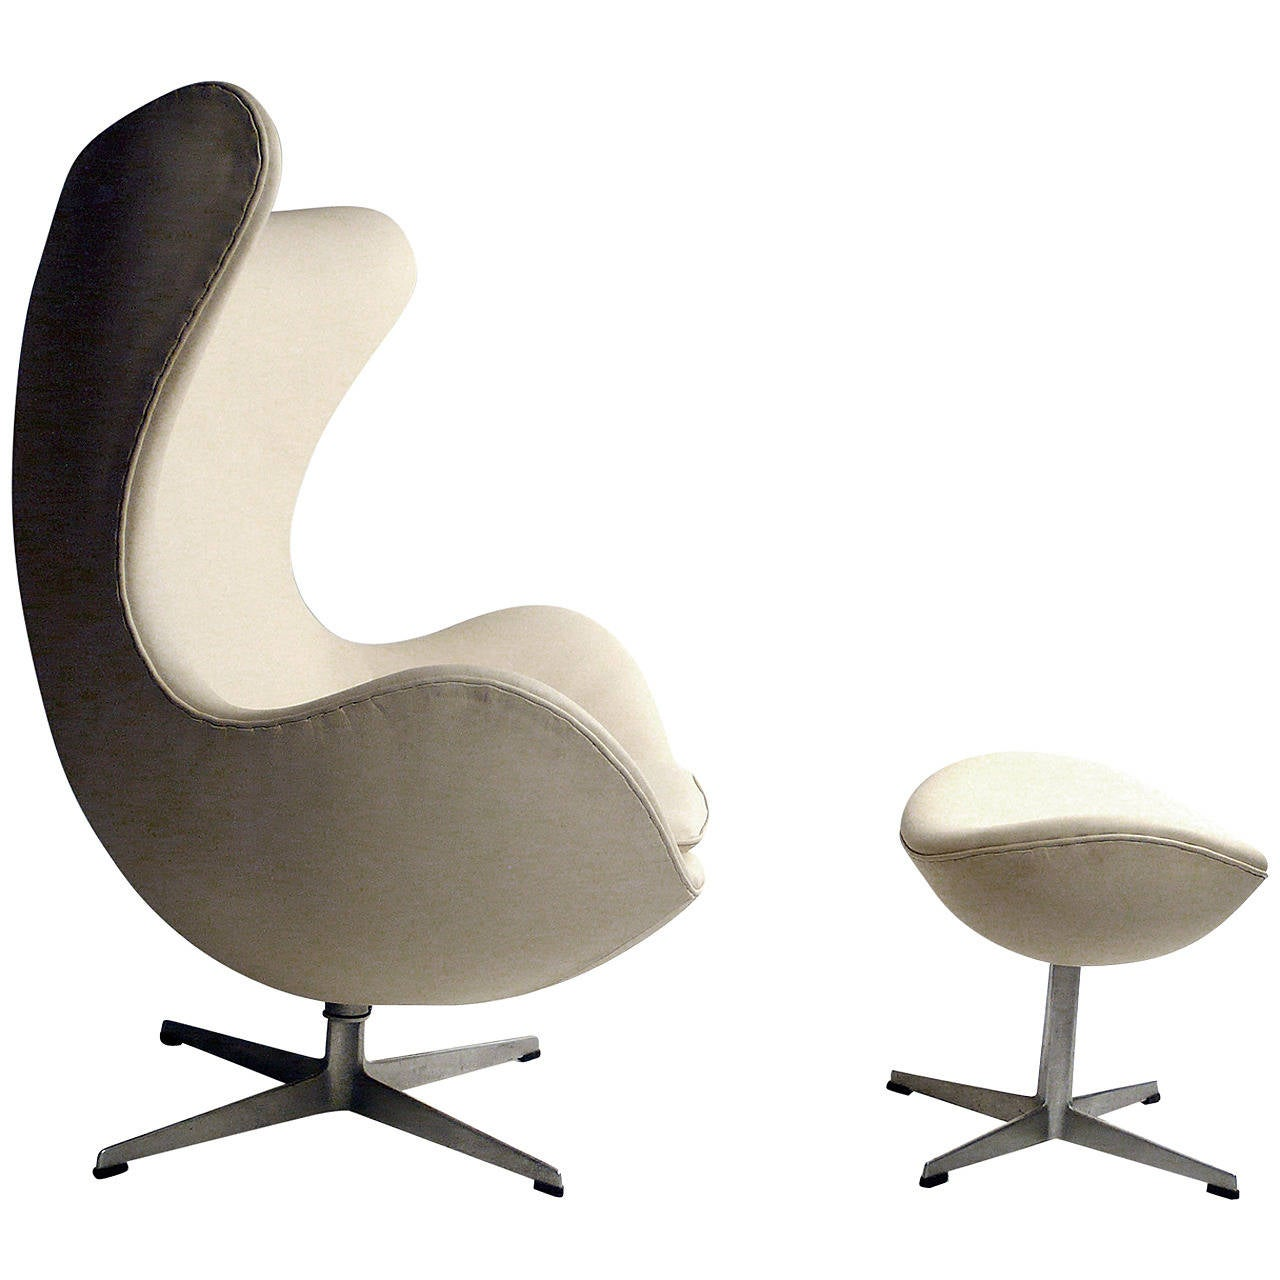 early production leather egg chair with matching ottoman by arne jacobsen at 1stdibs